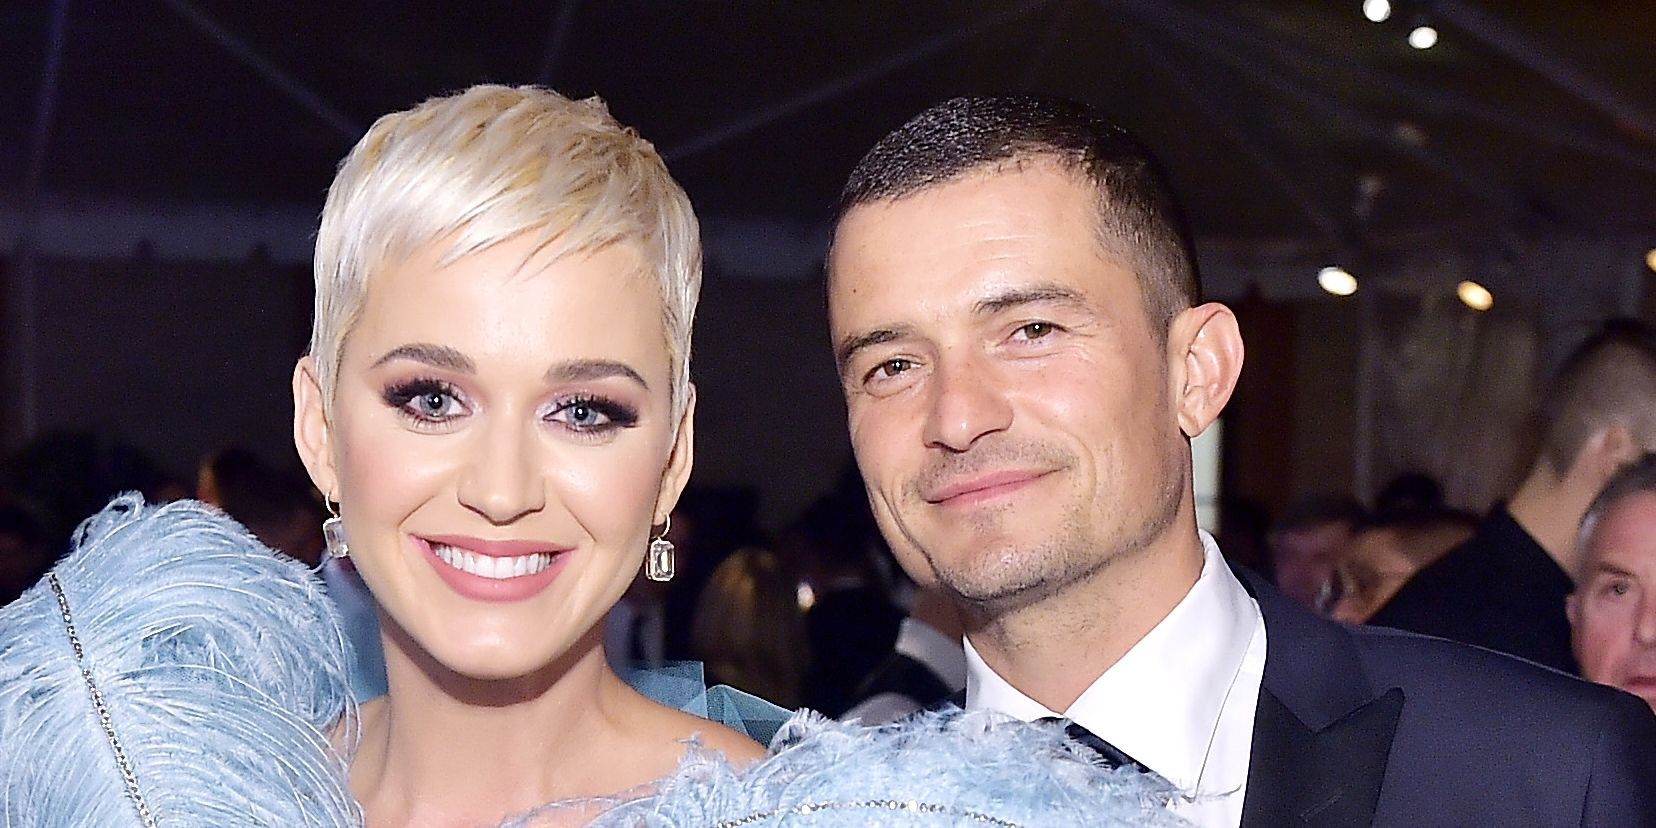 Katy Perry and Orlando Bloom Got Engaged on Valentine's Day and Her Ring Is Beautiful